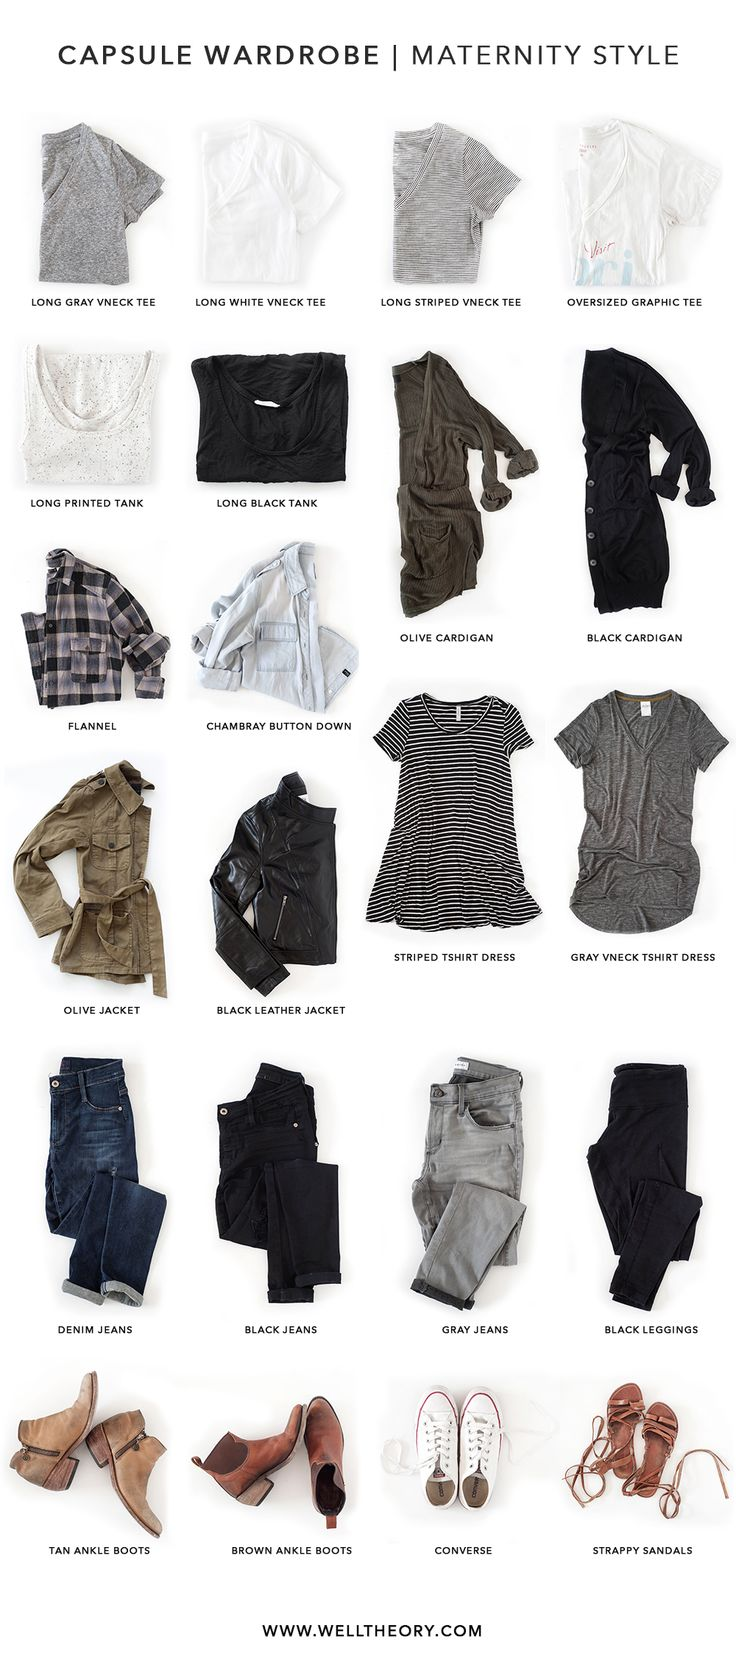 Capsule Wardrobe Maternity Style | Well Theory